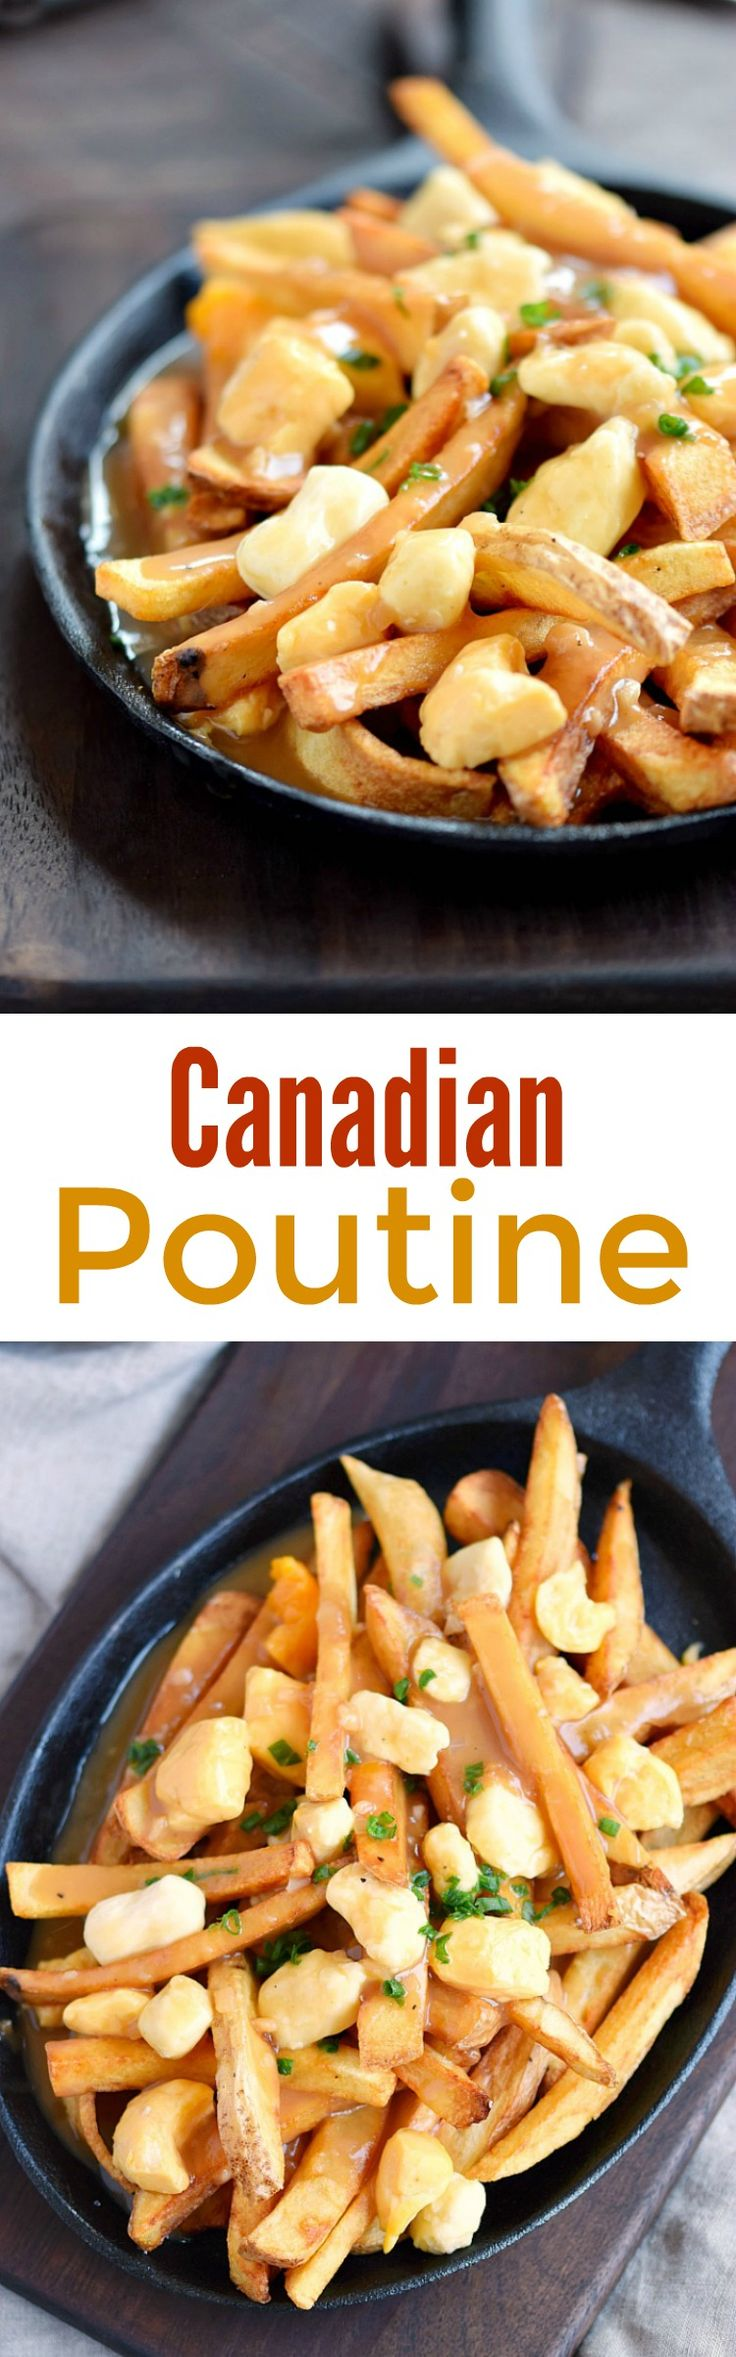 This is my take on Canadian Poutine, and it is delicious! Fresh, homemade french fries and white cheddar cheese curds topped with a rich brown gravy | cookingwithcurls.com